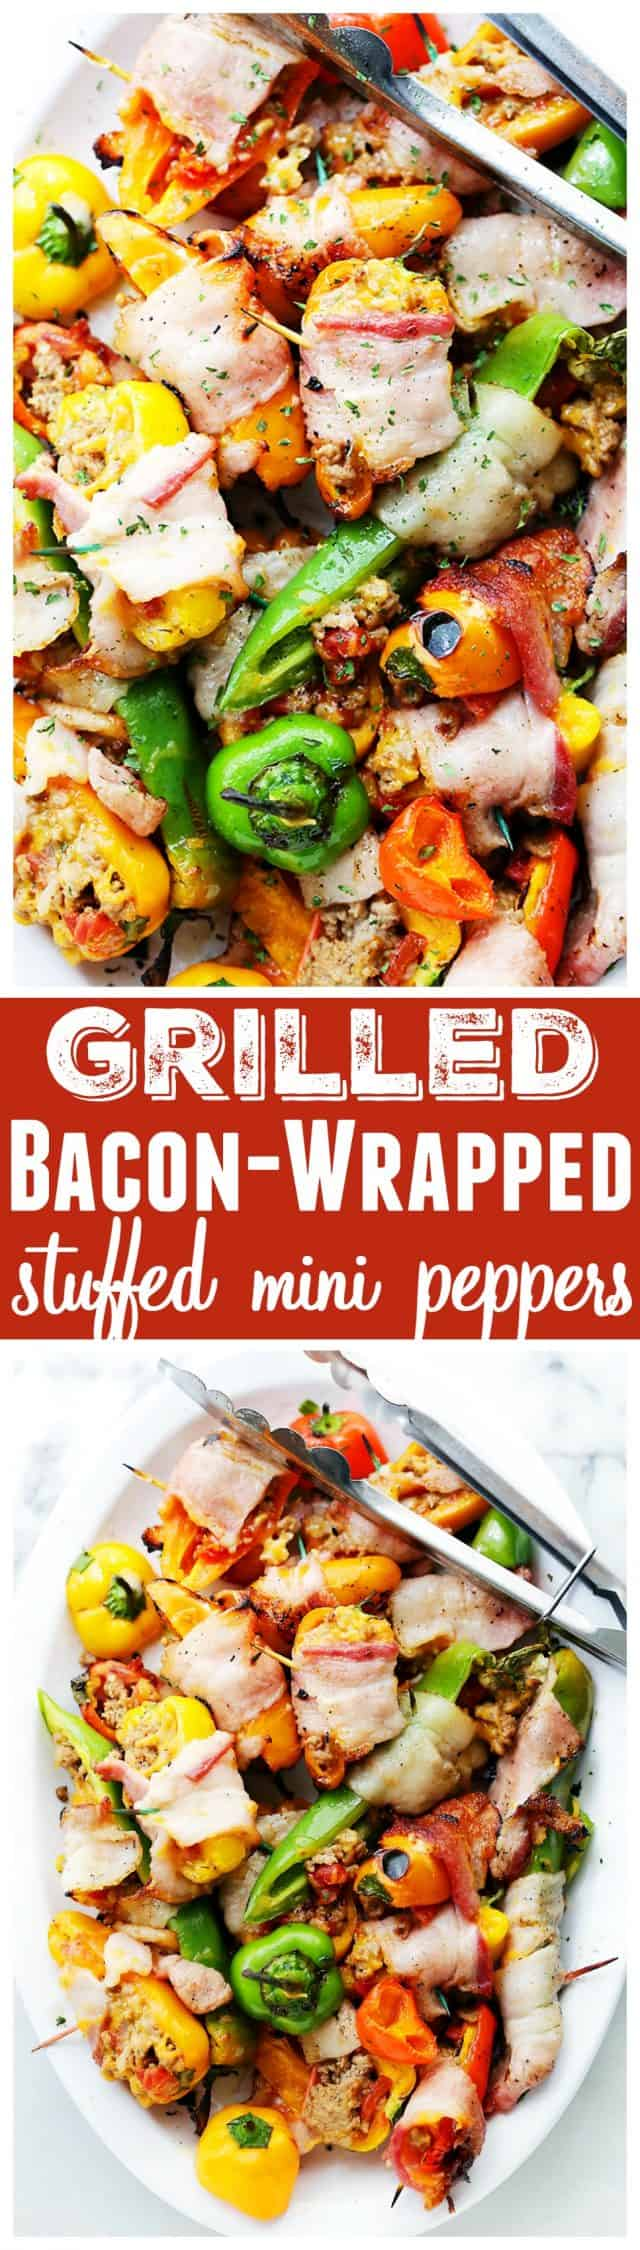 Grilled Bacon-Wrapped Stuffed Mini Peppers - Delicious bacon wrapped around tasty mini peppers stuffed with a flavorful ground turkey and tomatoes mixture, and cooked on the grill!